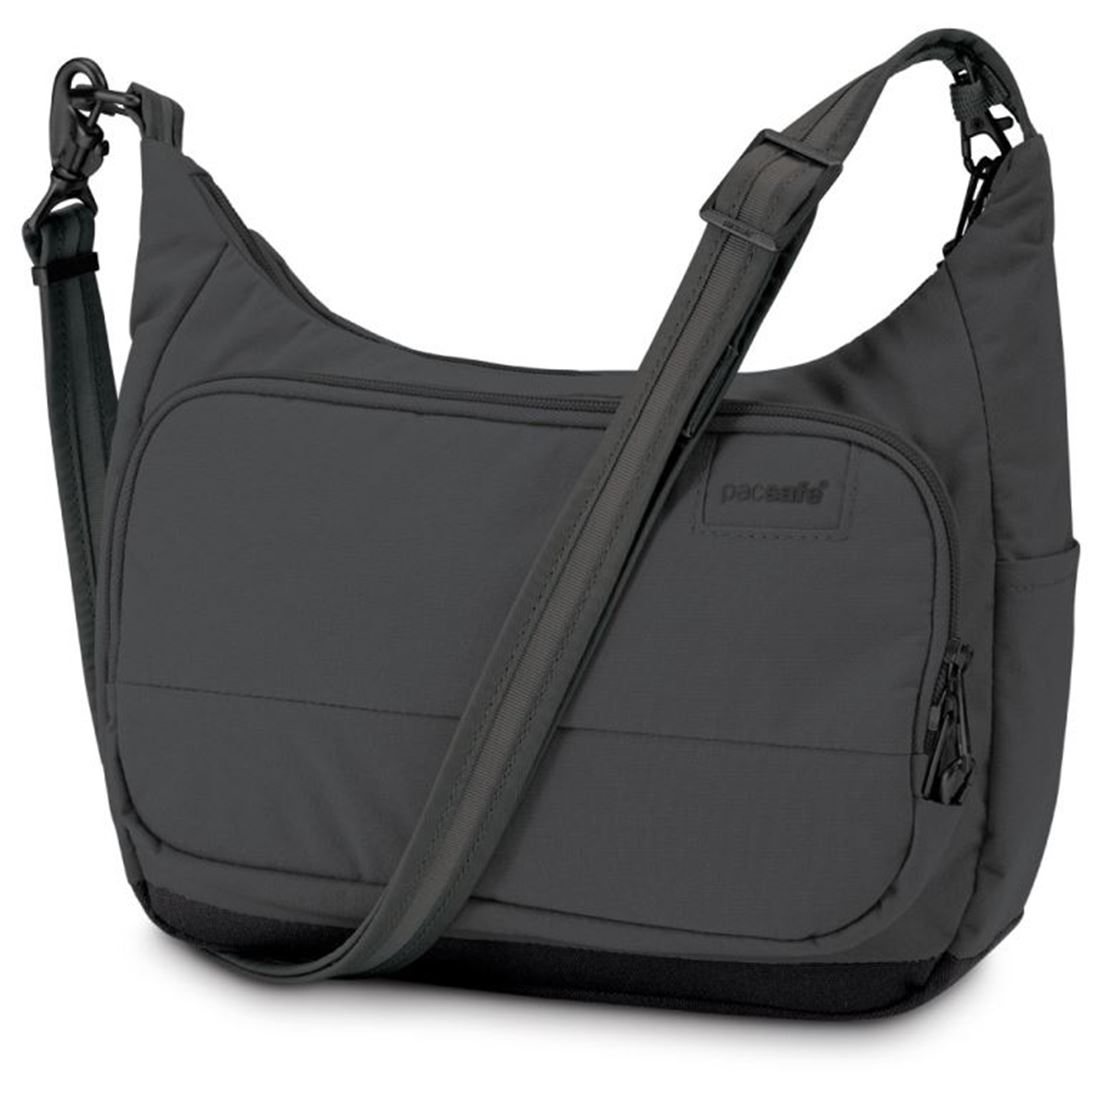 Picture of Pacsafe Citysafe LS100 Travel Handbag Black